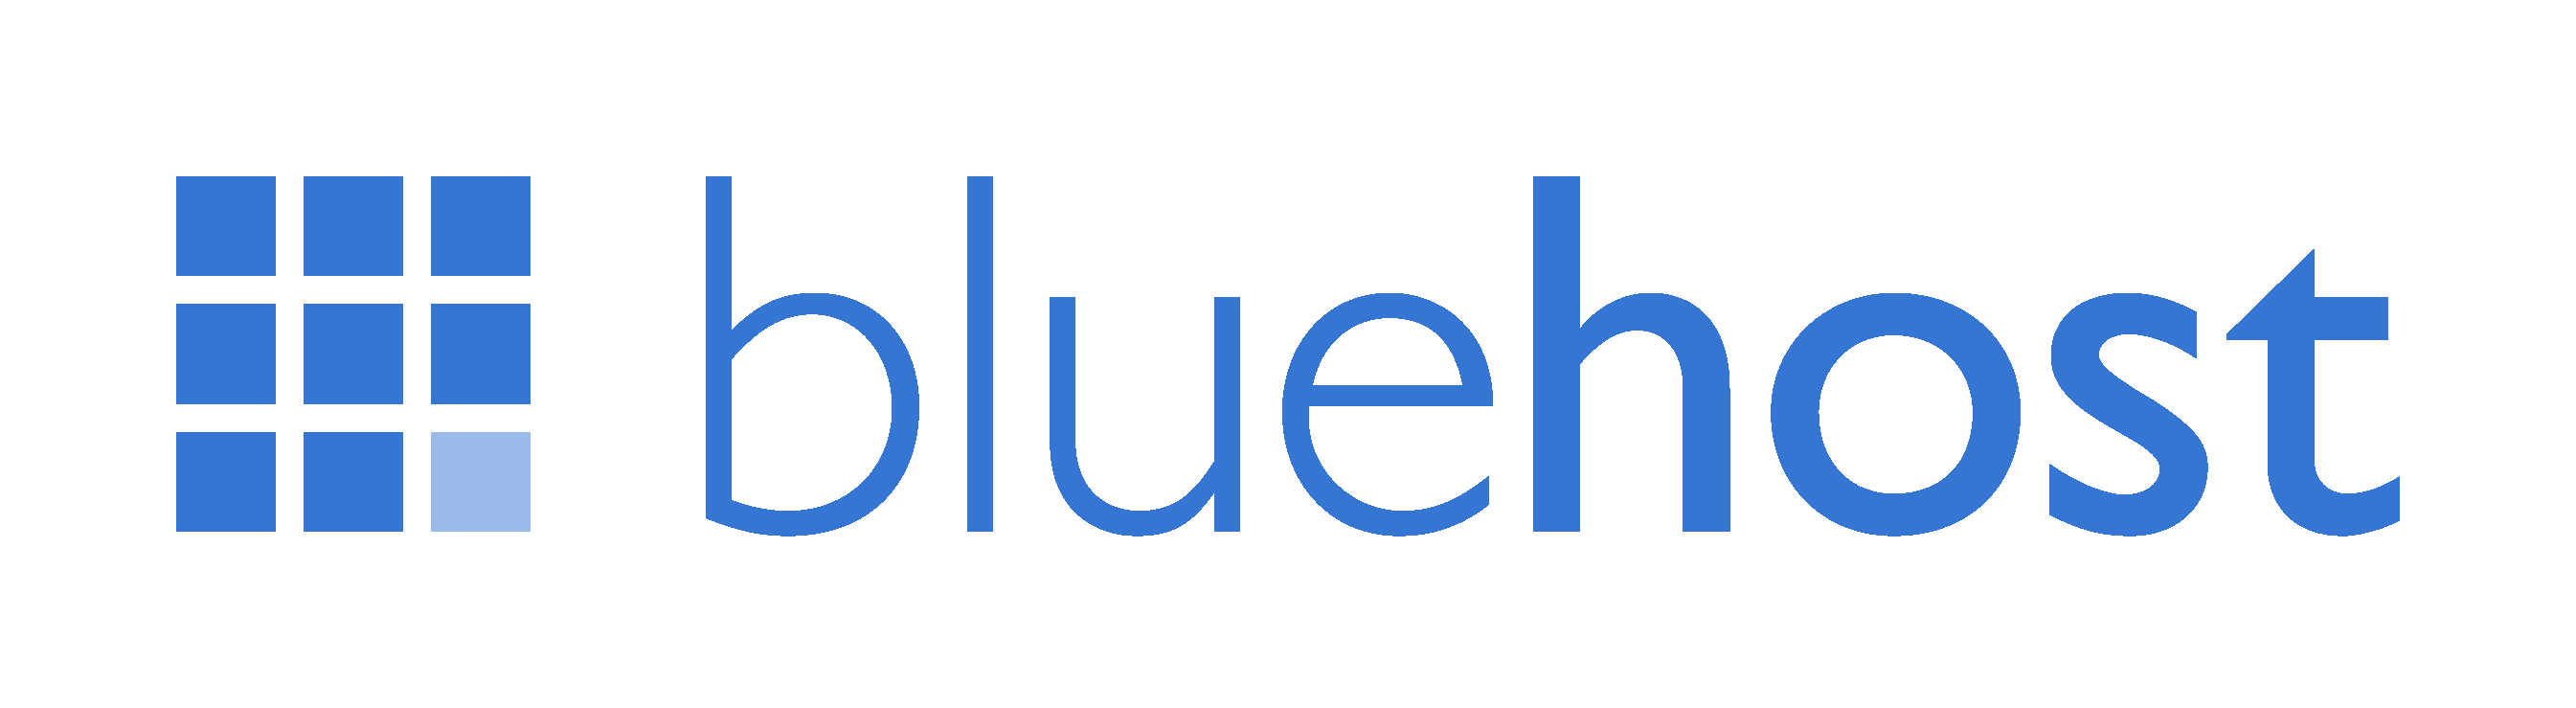 bluehost_main_logo